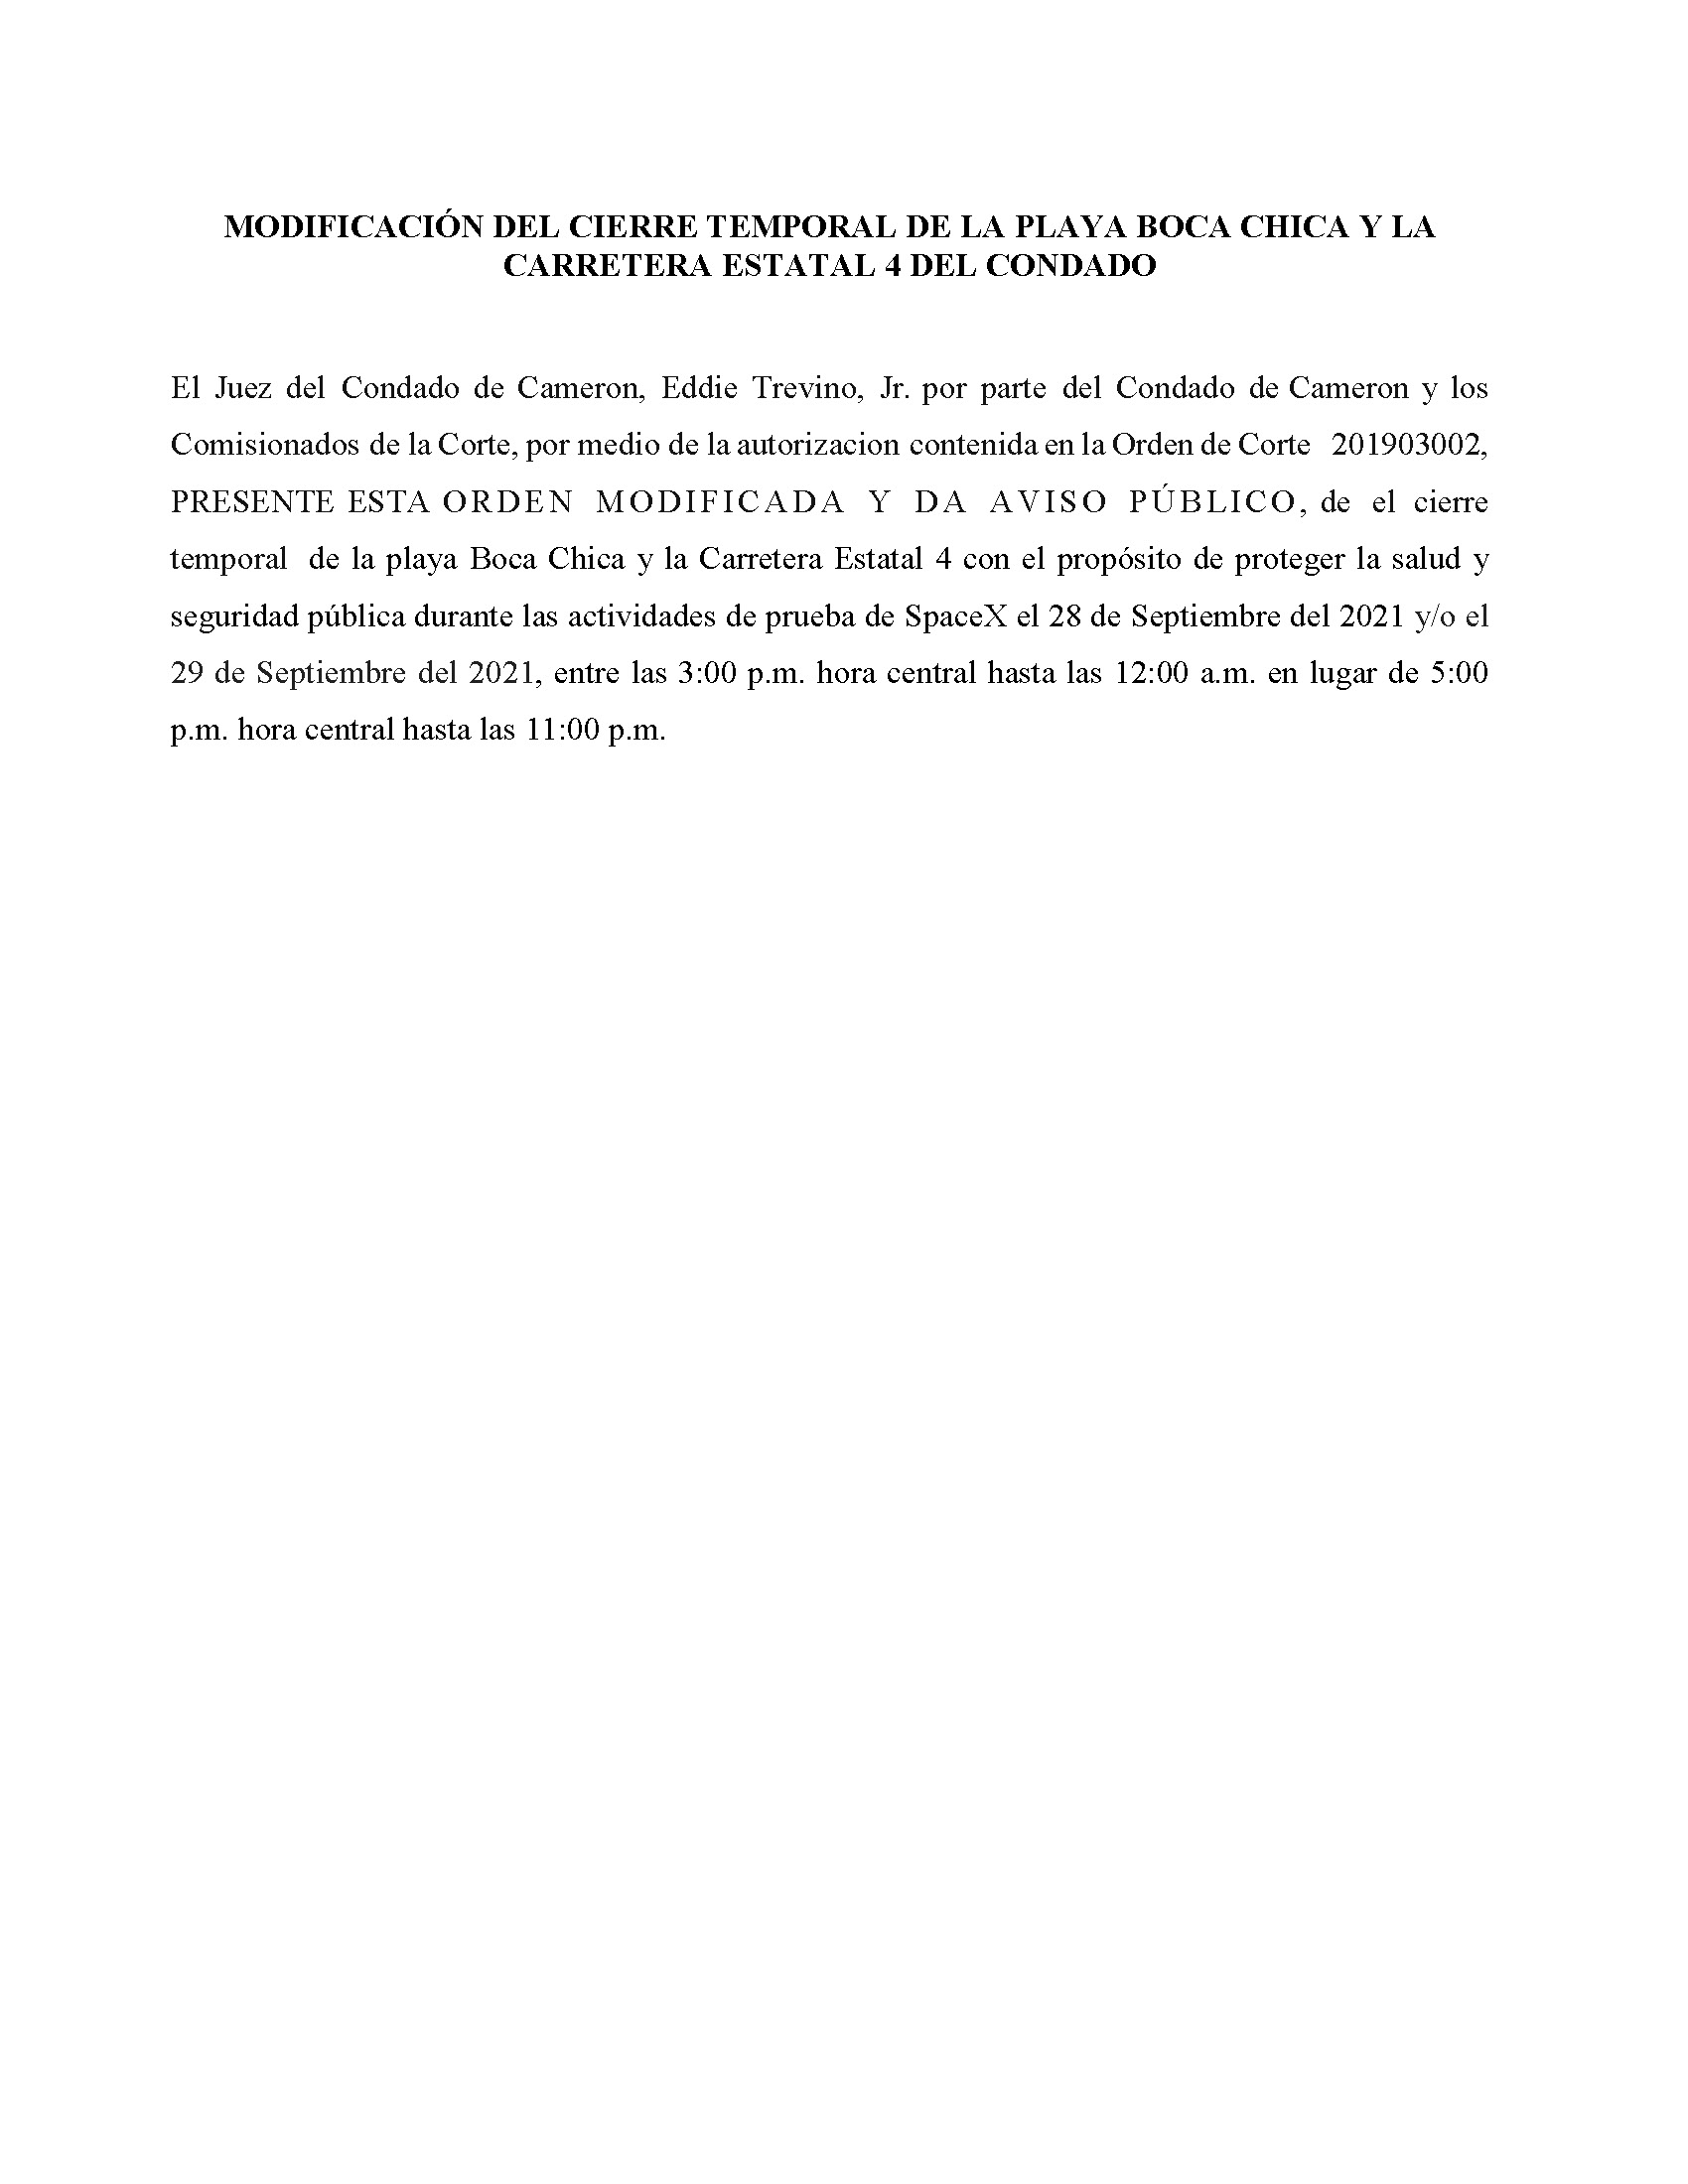 Amended Order In Spanish.09.28 29.2021